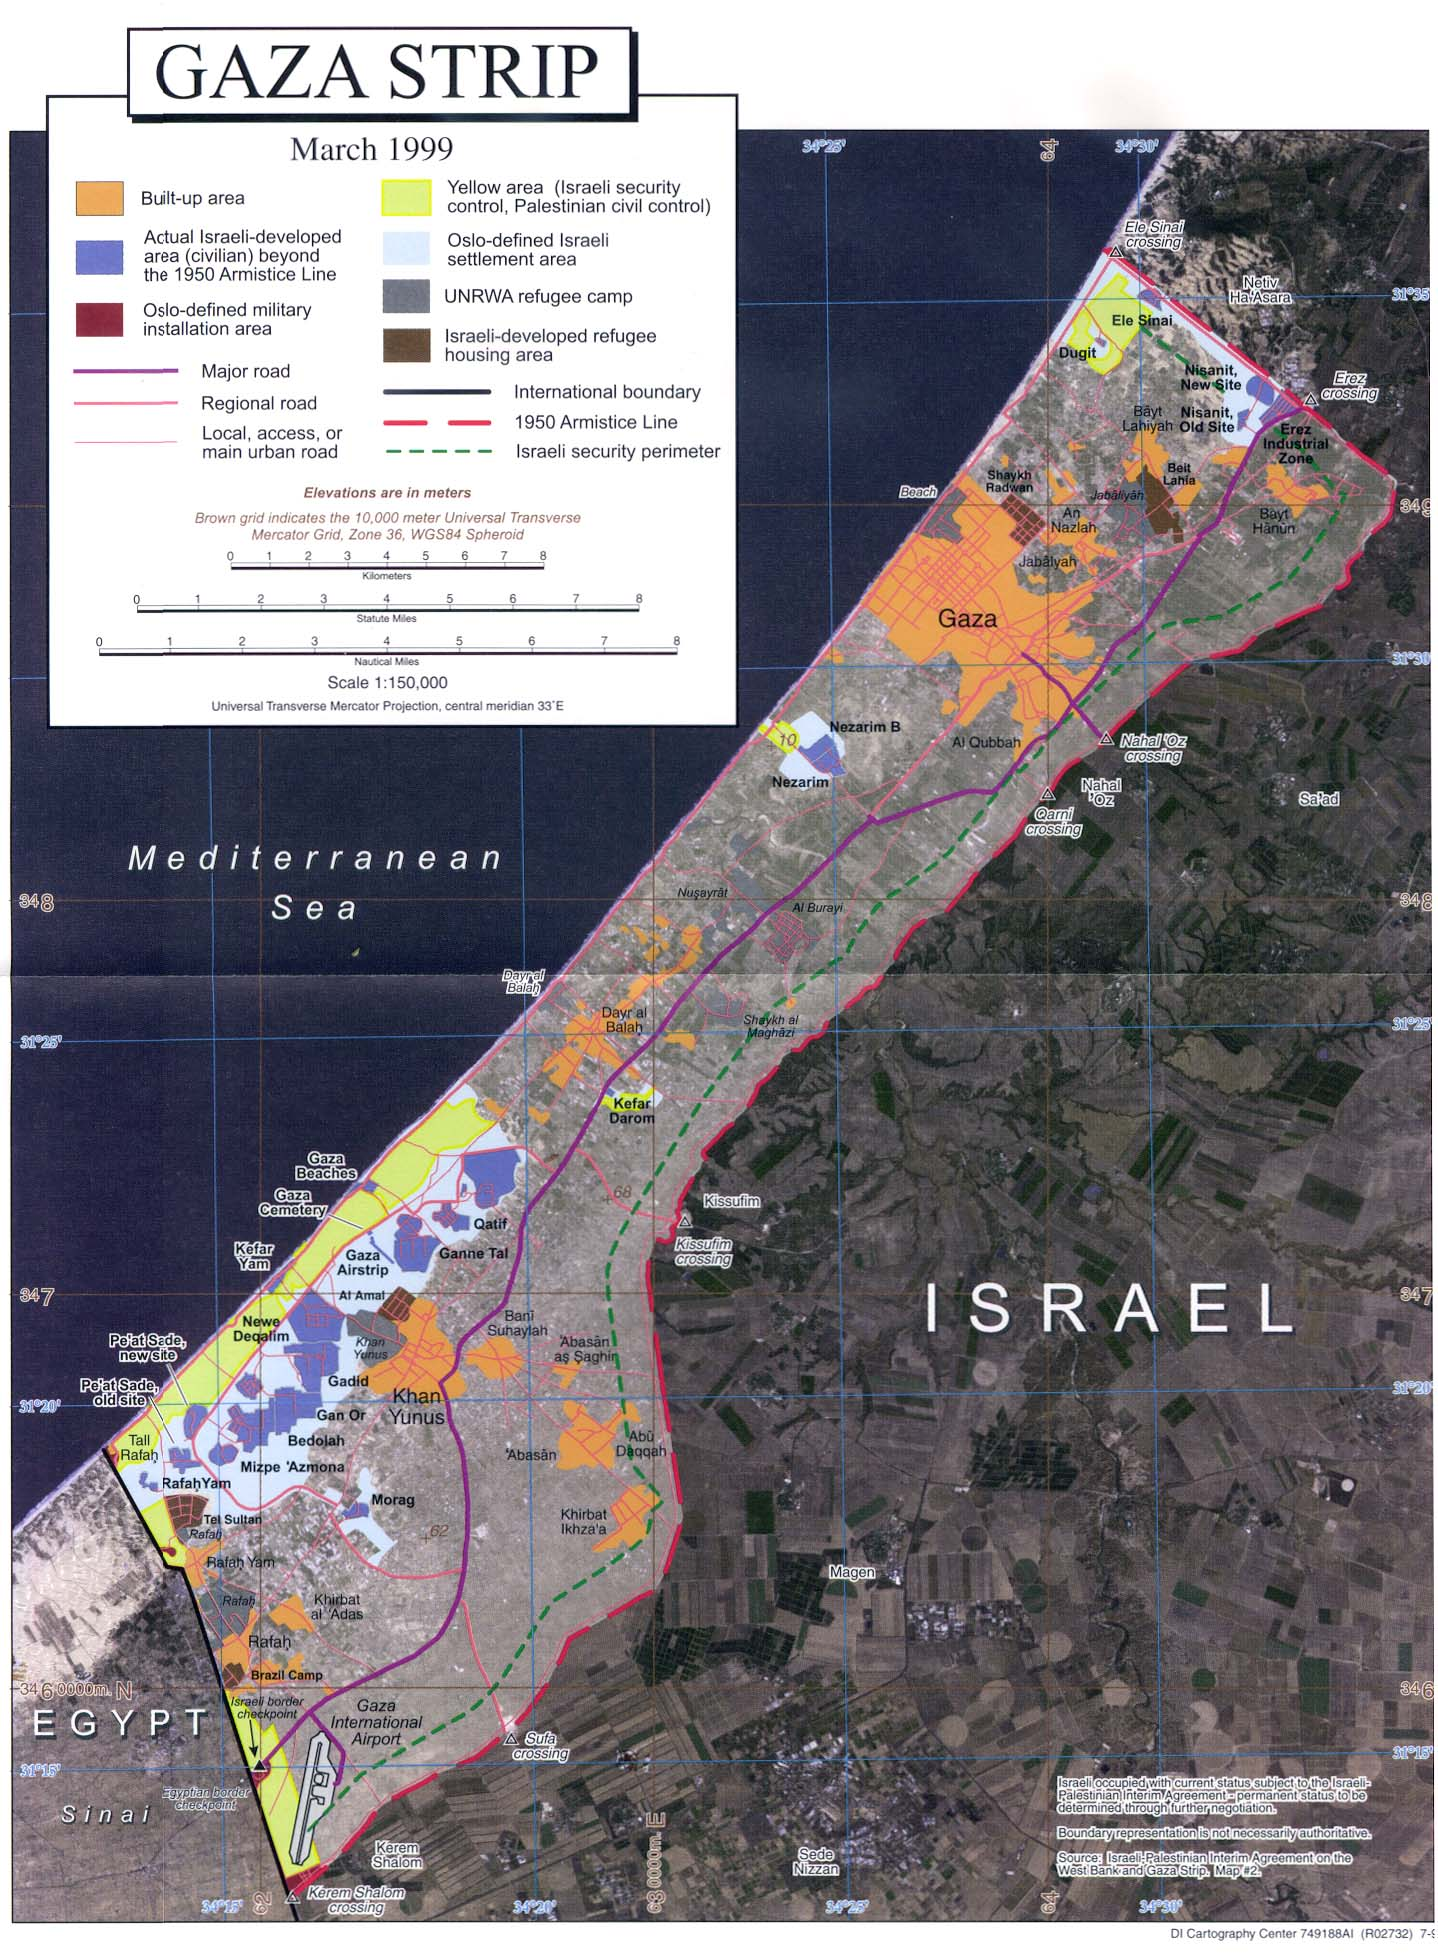 http://www.lib.utexas.edu/maps/middle_east_and_asia/gaza_strip_1999.jpg